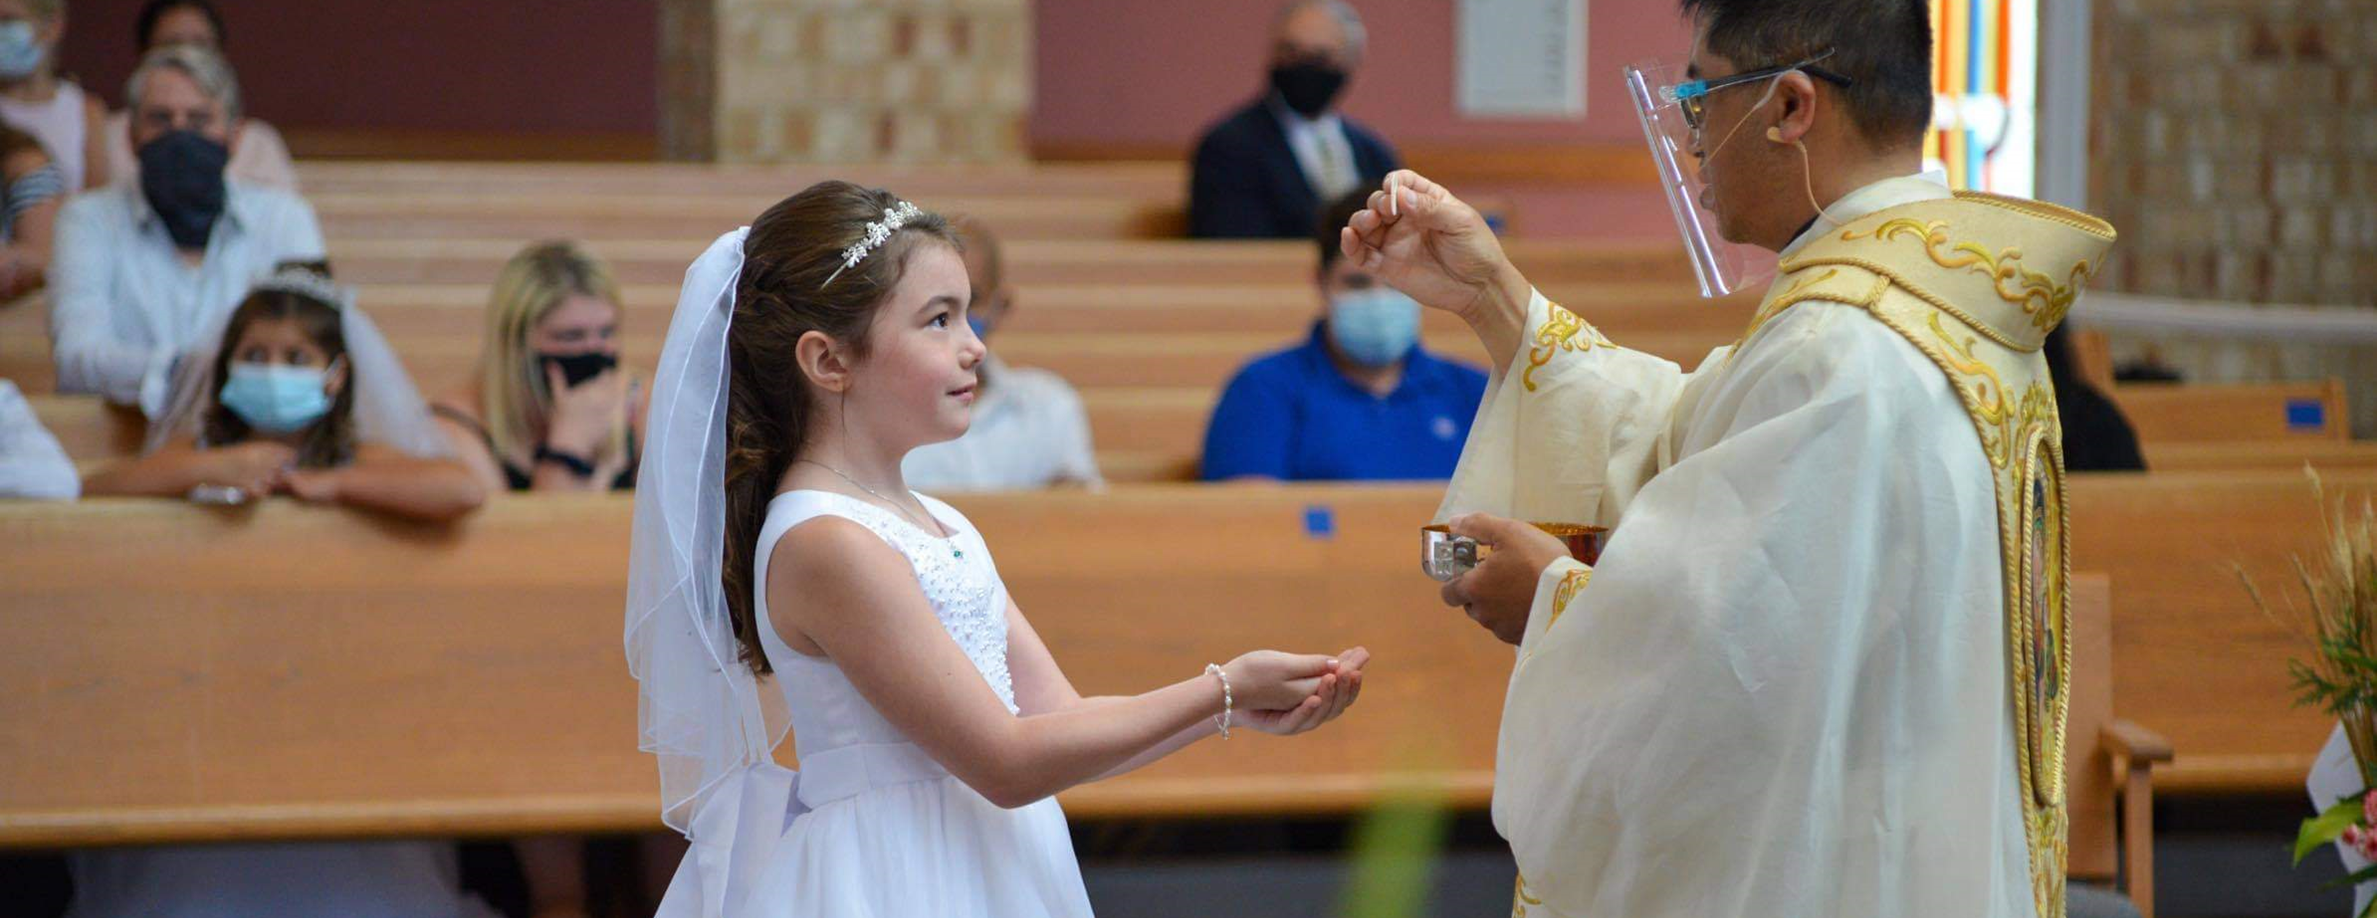 Communion_girl_CROPPED